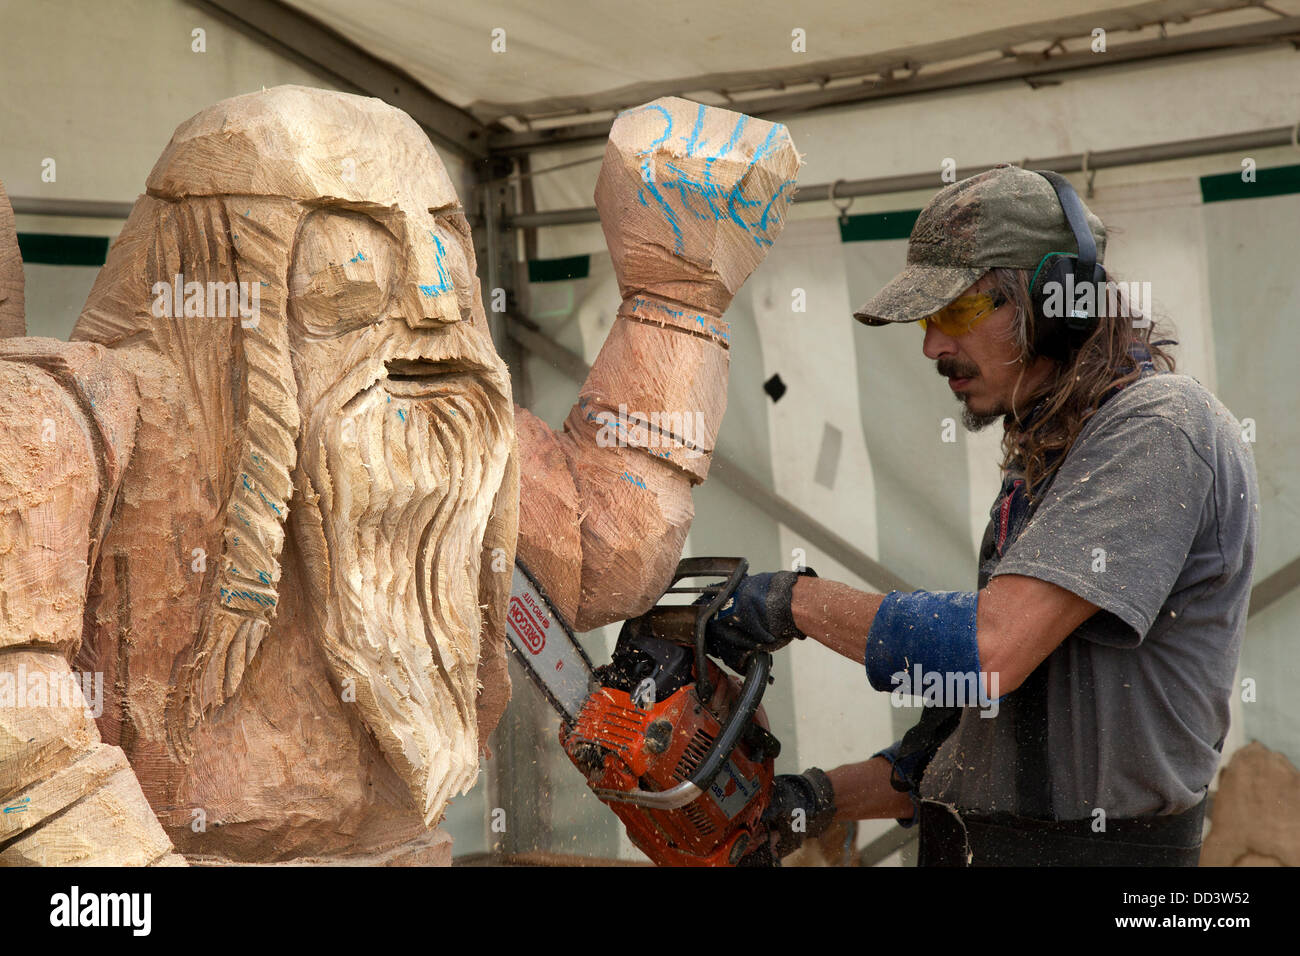 Tabley, Cheshire, UK 25th August, 2013. Viking figure carved by Bruce Thor from the USA at the 9th English Open - Stock Image